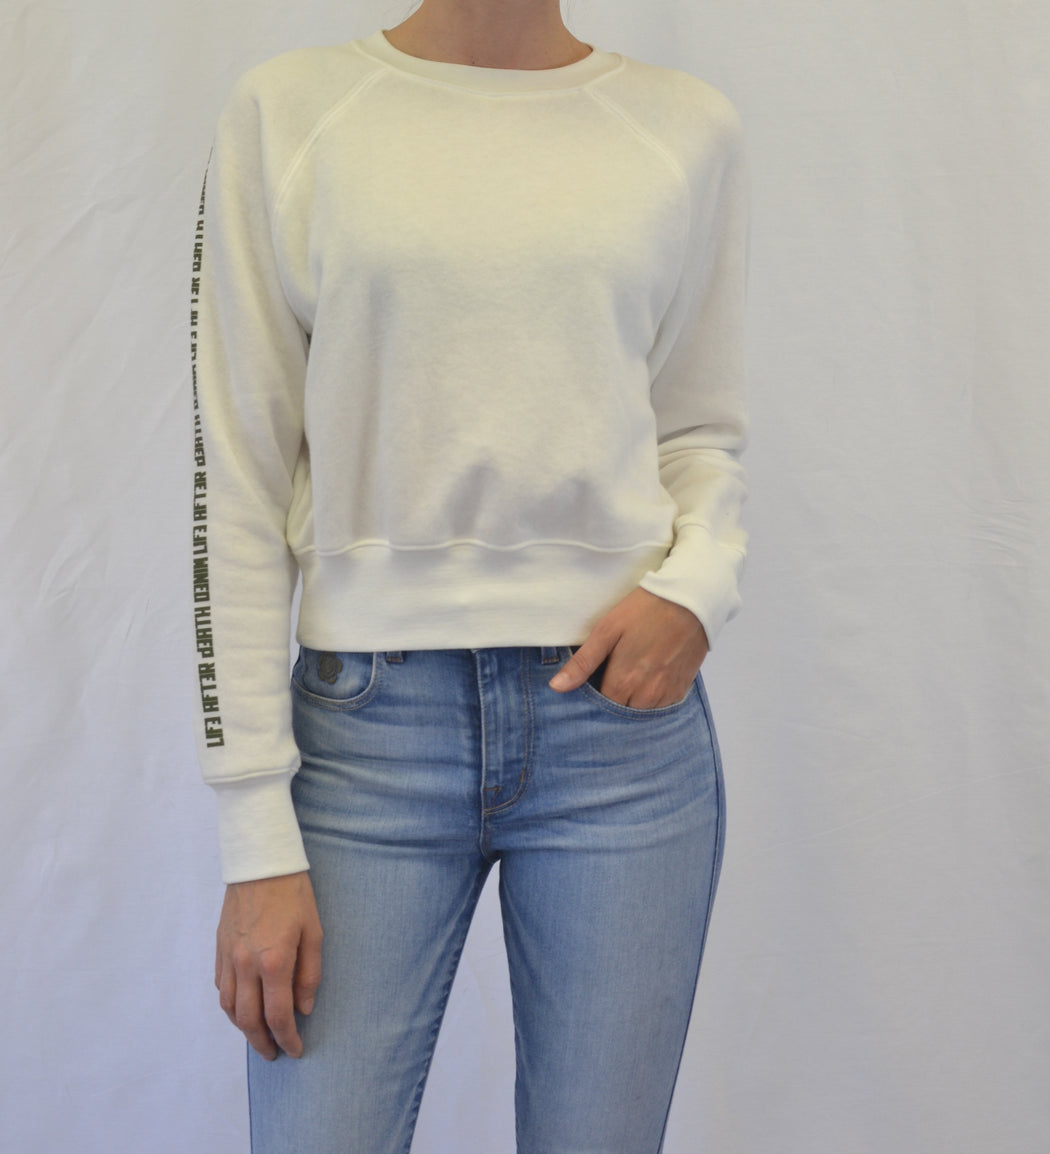 Cropped Raglan Fleece Sweatshirt -Organic Cotton / Recycled Polyester